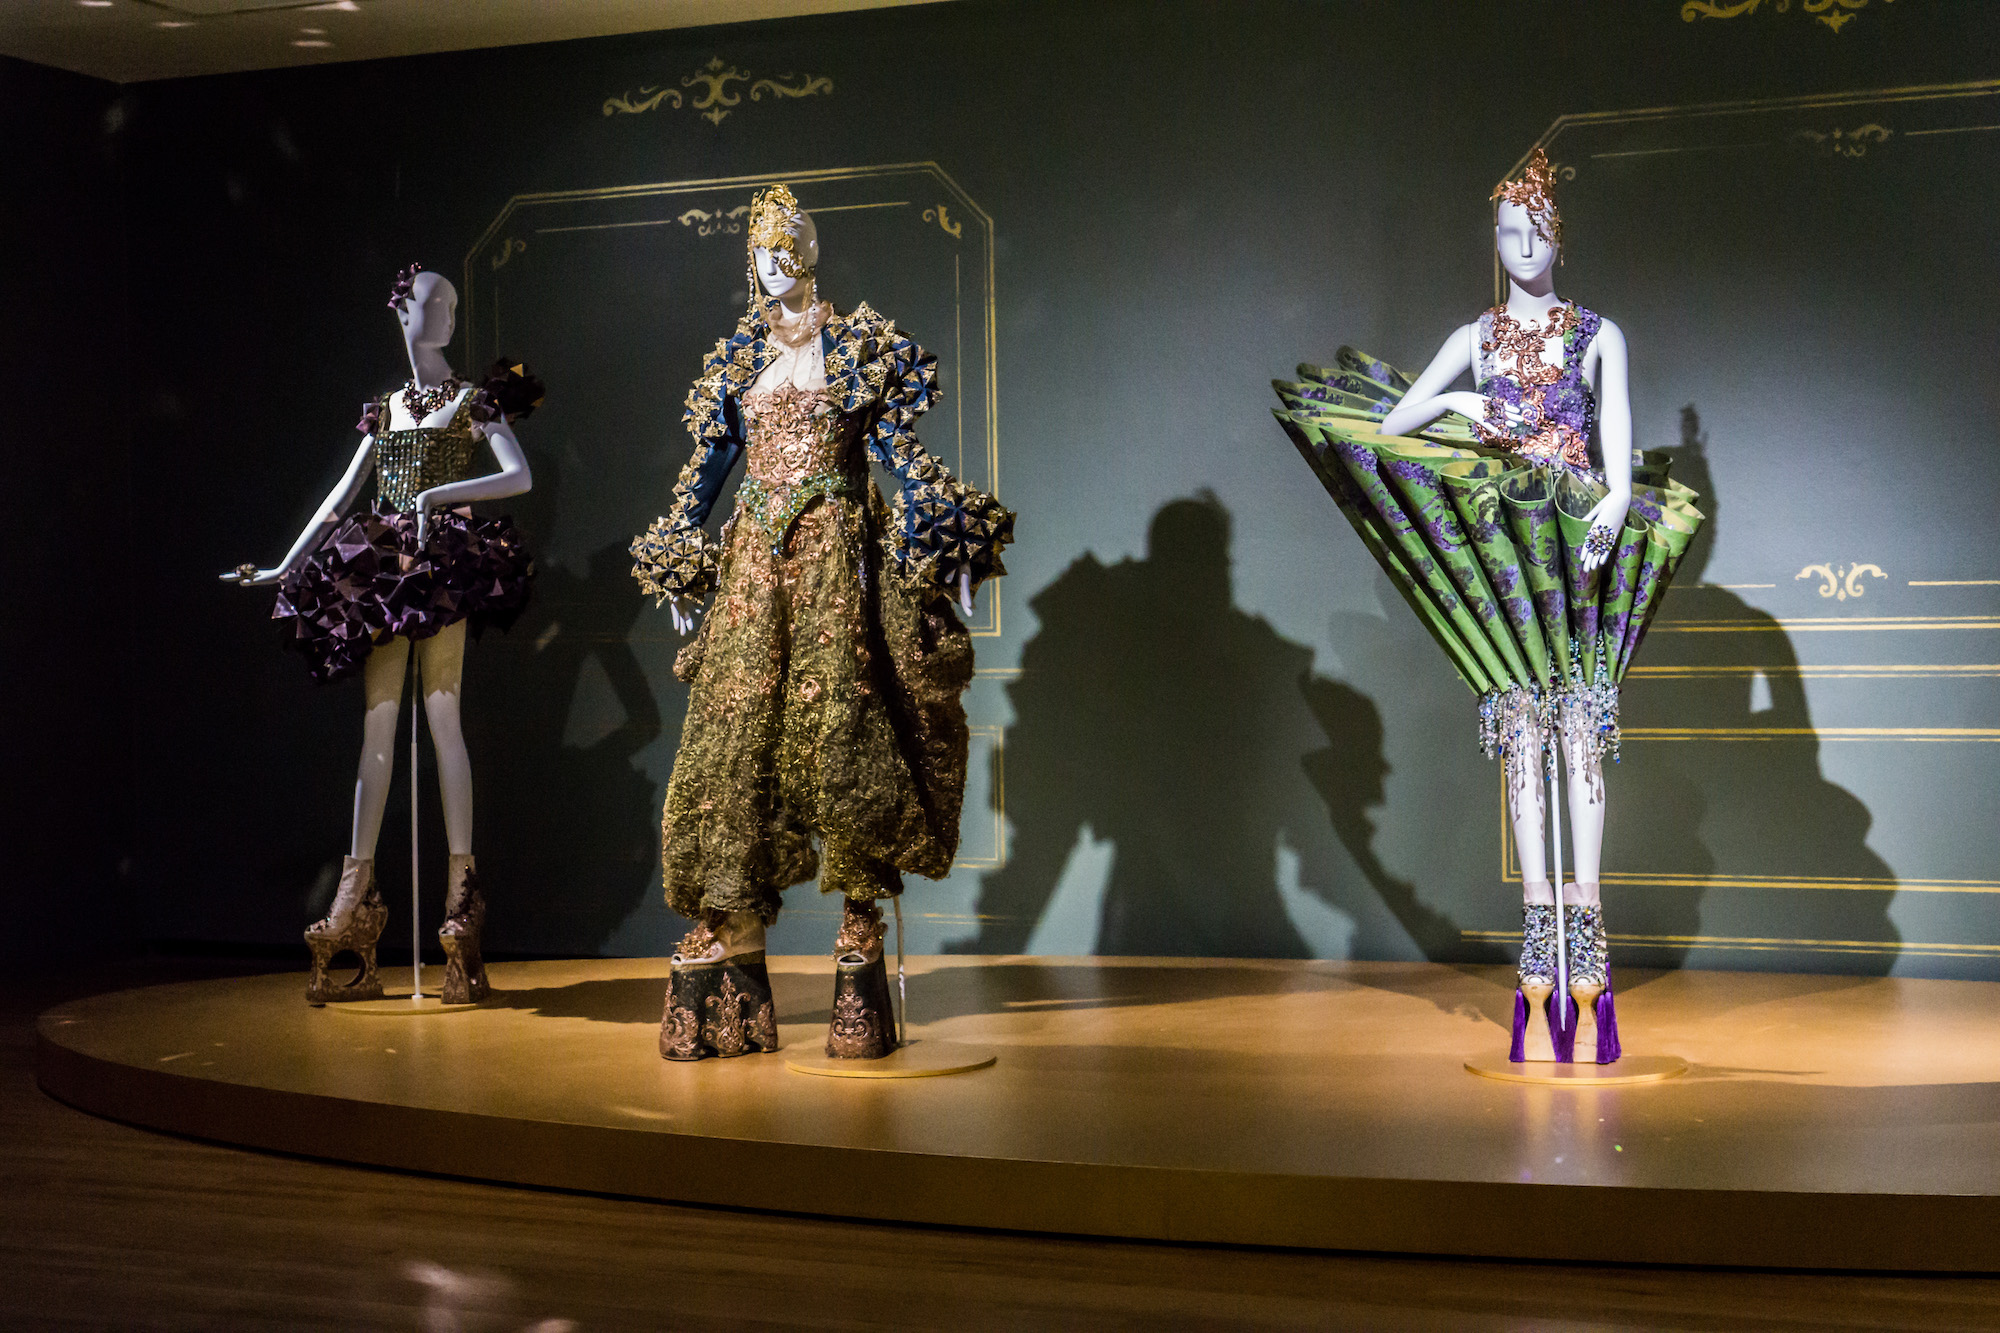 Vancouver Art Gallery presents Canadian Premiere of 'Guo Pei: Couture Beyond', First Fashion Exhibition in Gallery's History